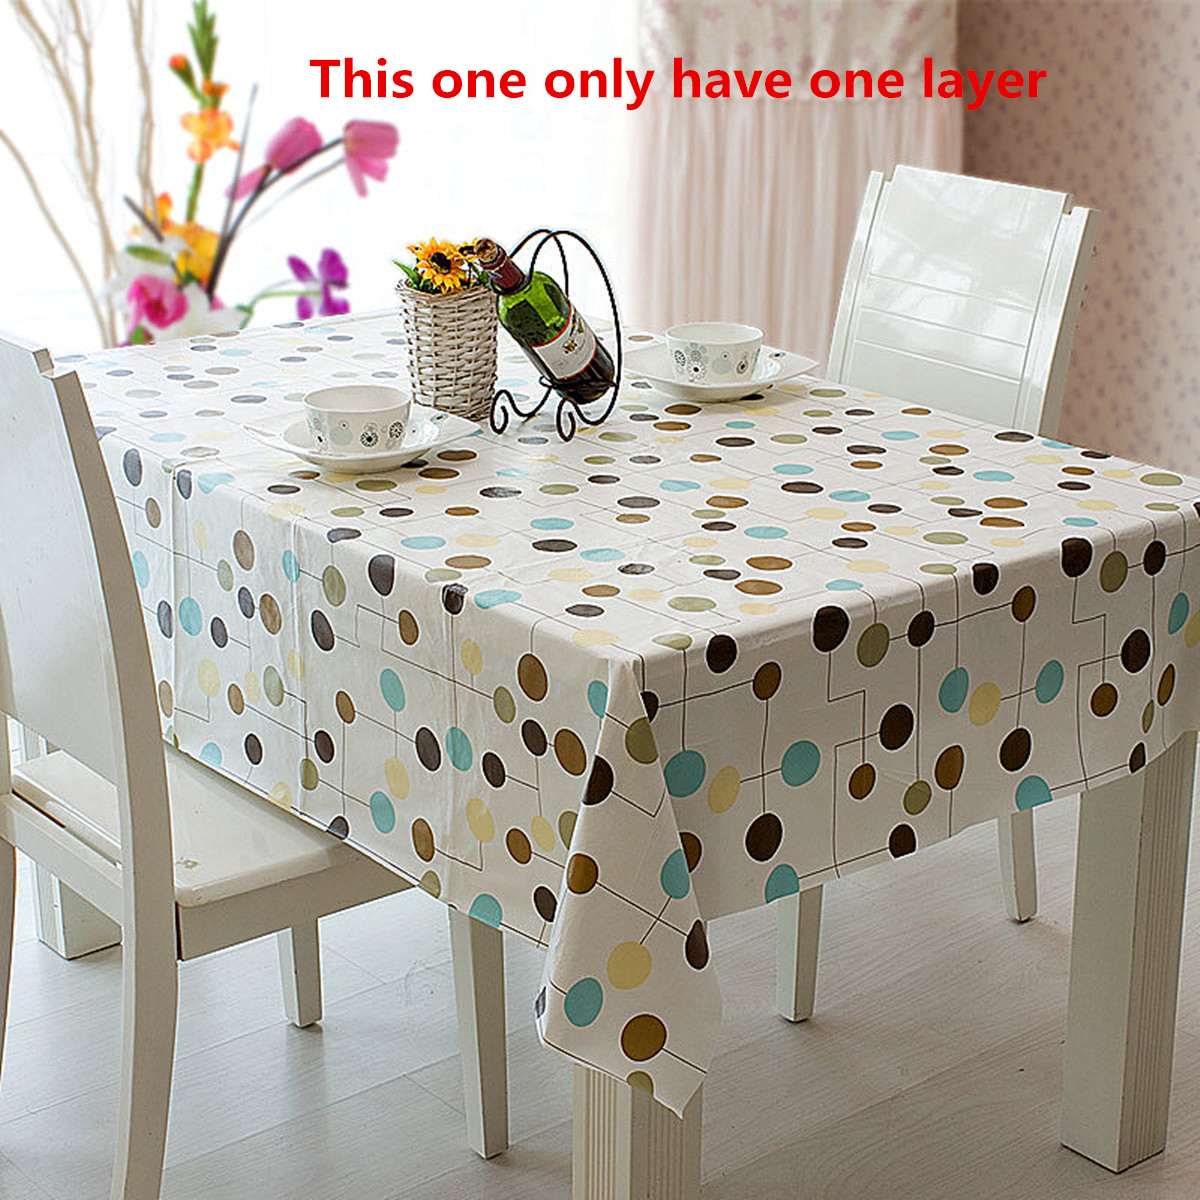 Superieur ... Wipe Clean Pvc Tablecloth Waterproof Grease Kitchen Table ...